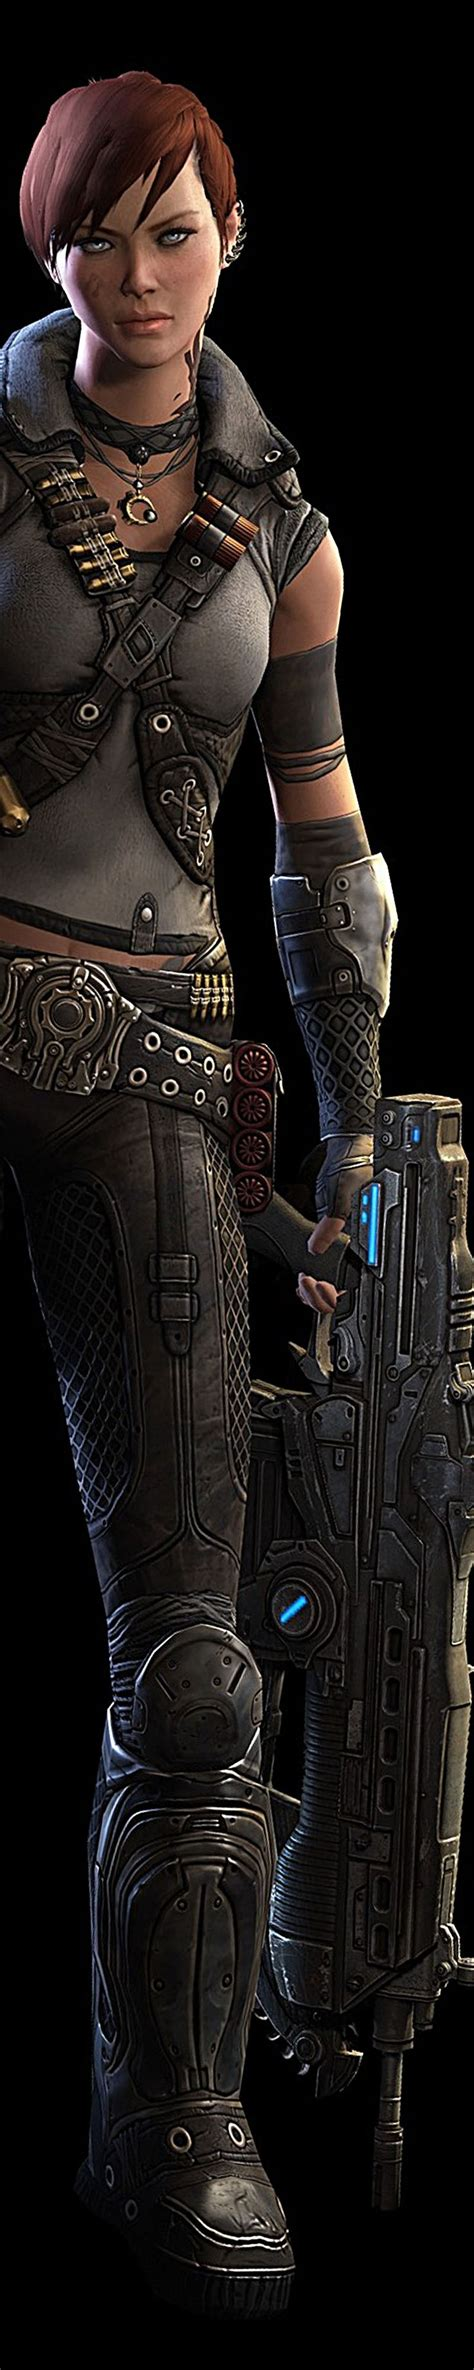 58 Best Images About Gears Of War Gears Nation On Pinterest